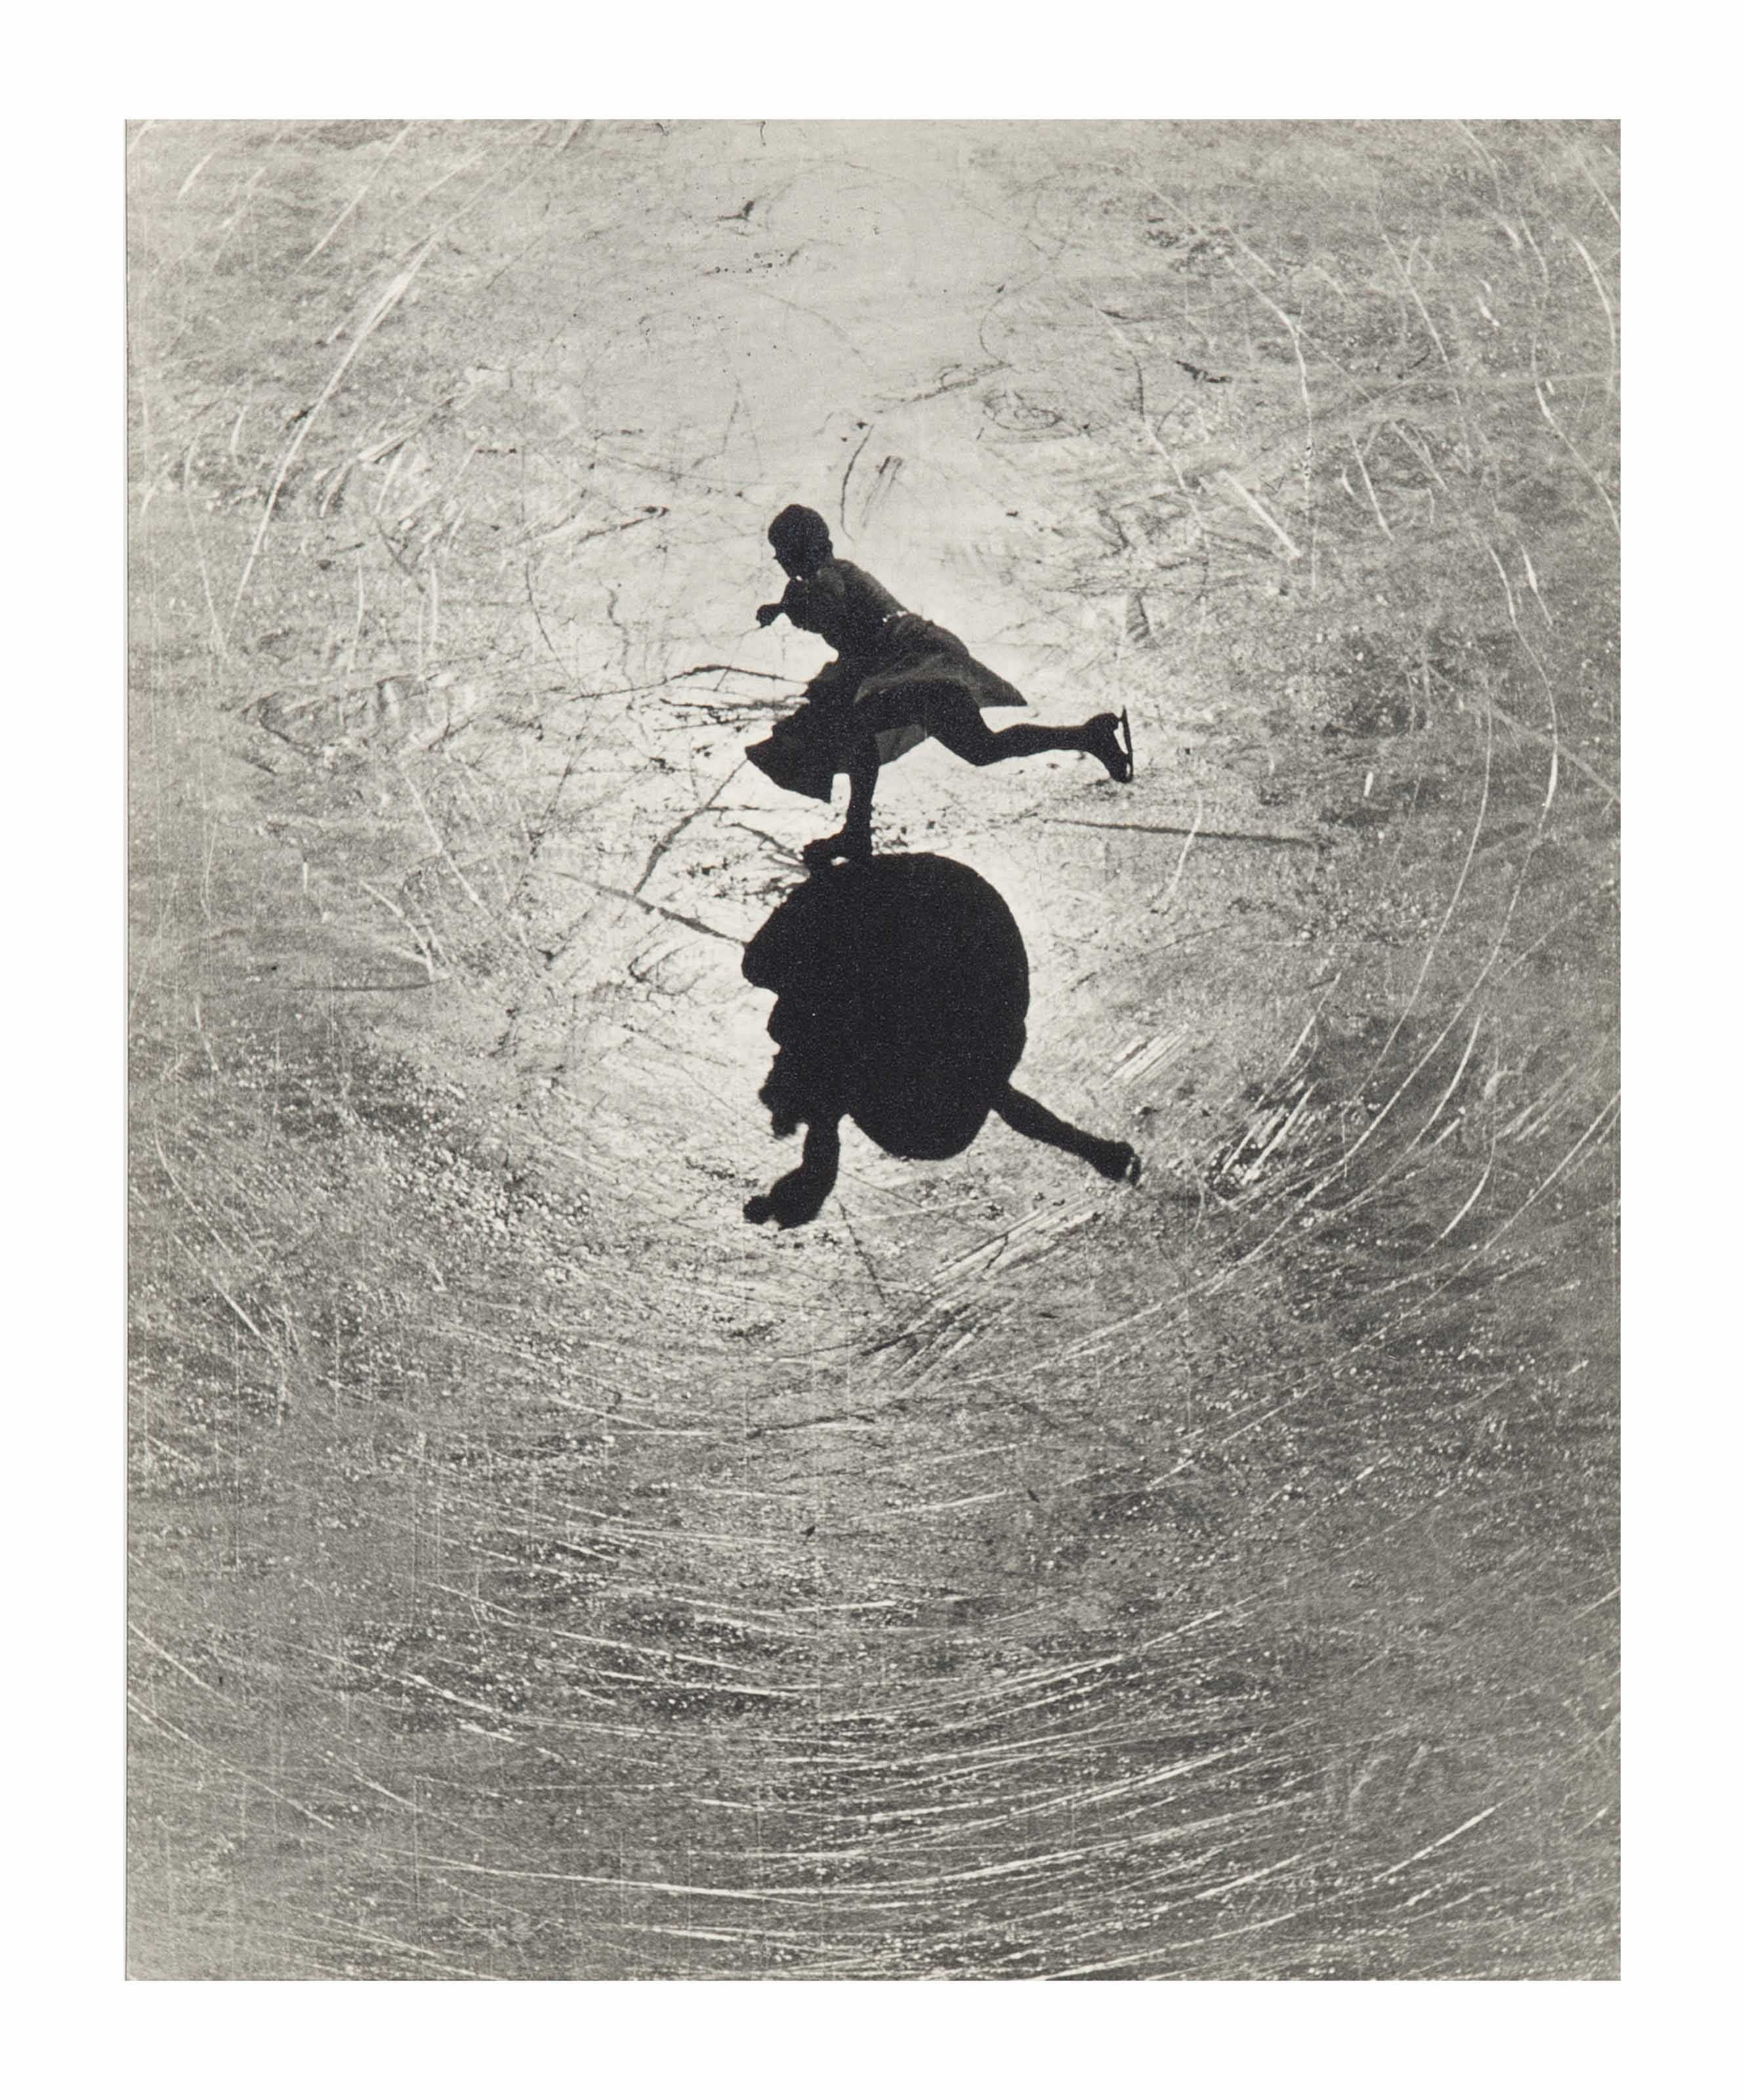 Untitled (Sunlight silhouetting a skating figure), 1930s